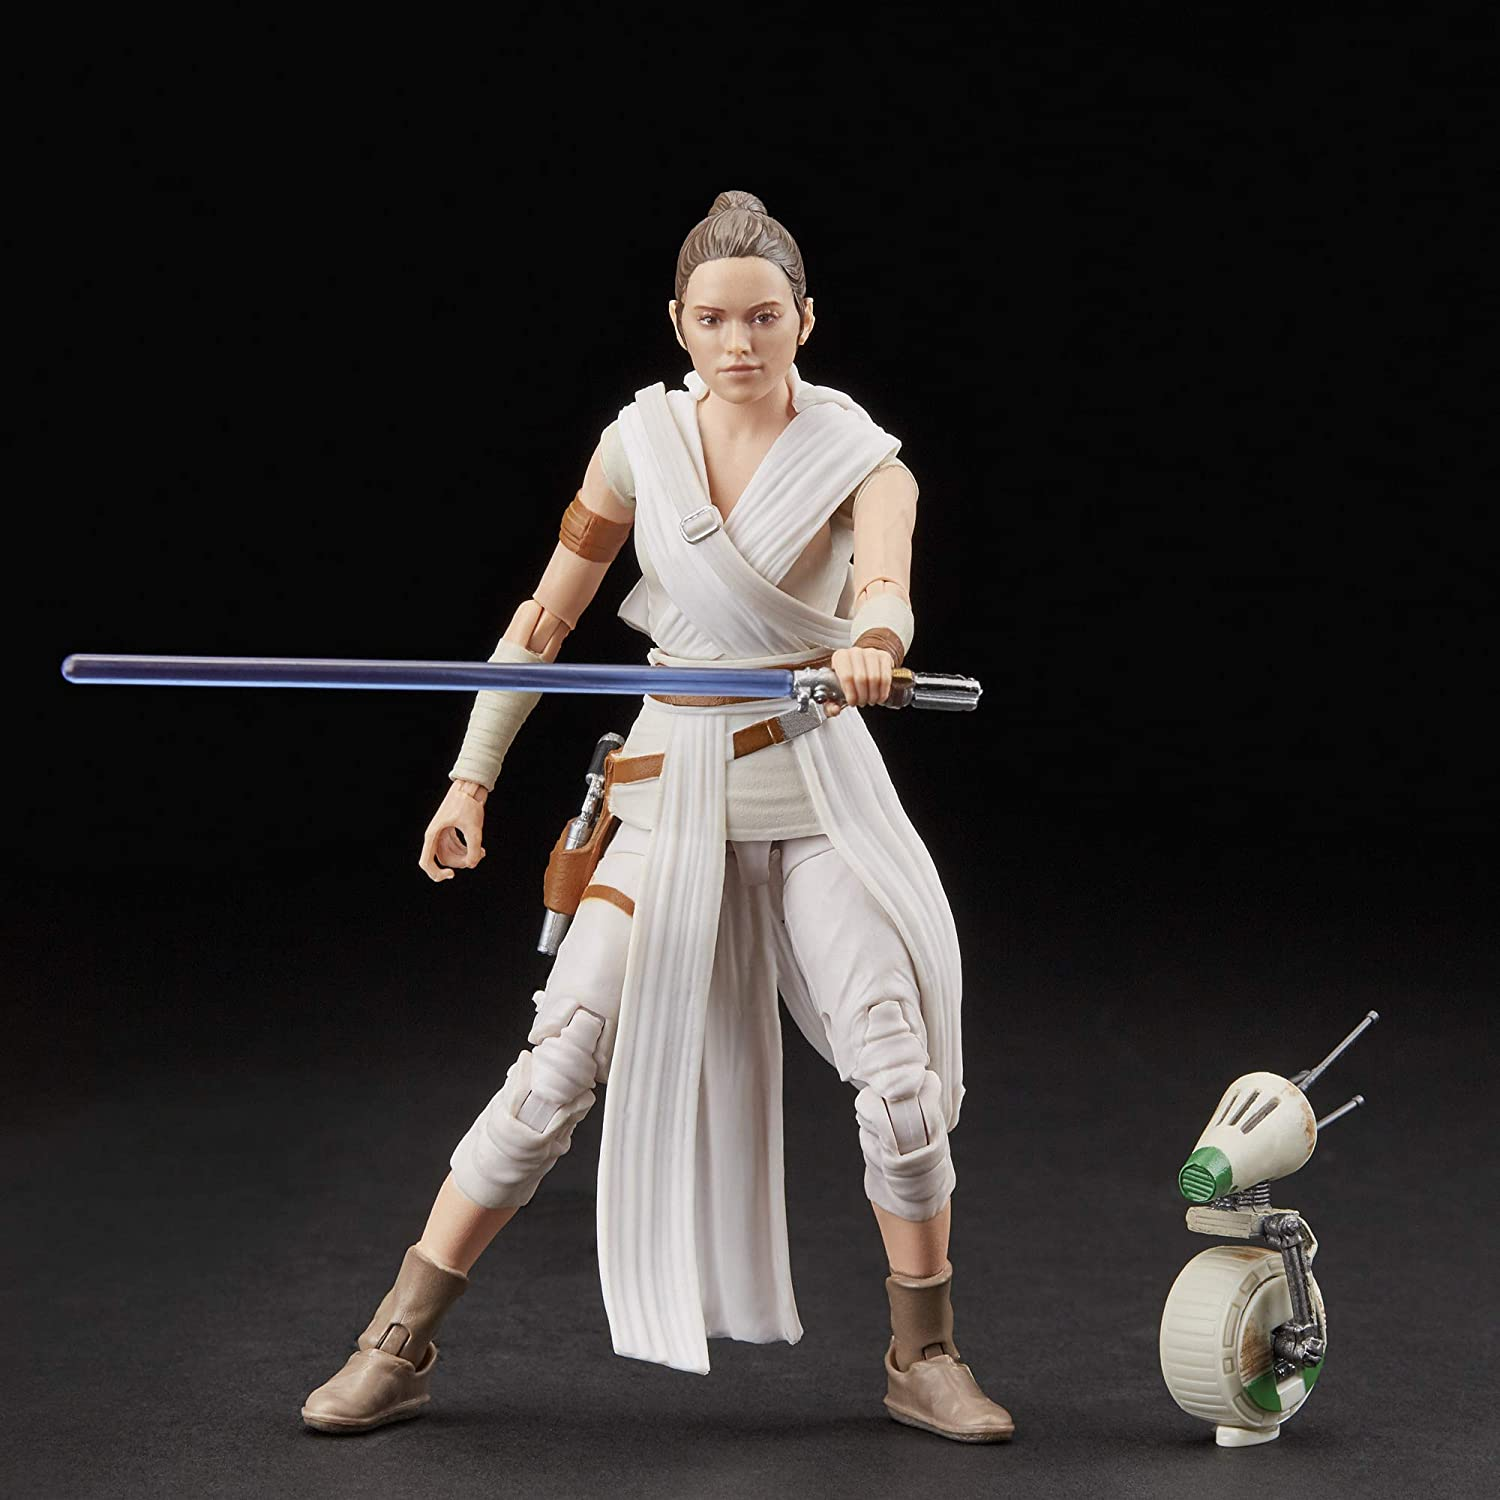 """Star Wars The Black Series Rey Toy 6"""" Scale Collectible Action Figure, Kids Ages 4 & Up: Amazon.it: Giochi e giocattoli"""